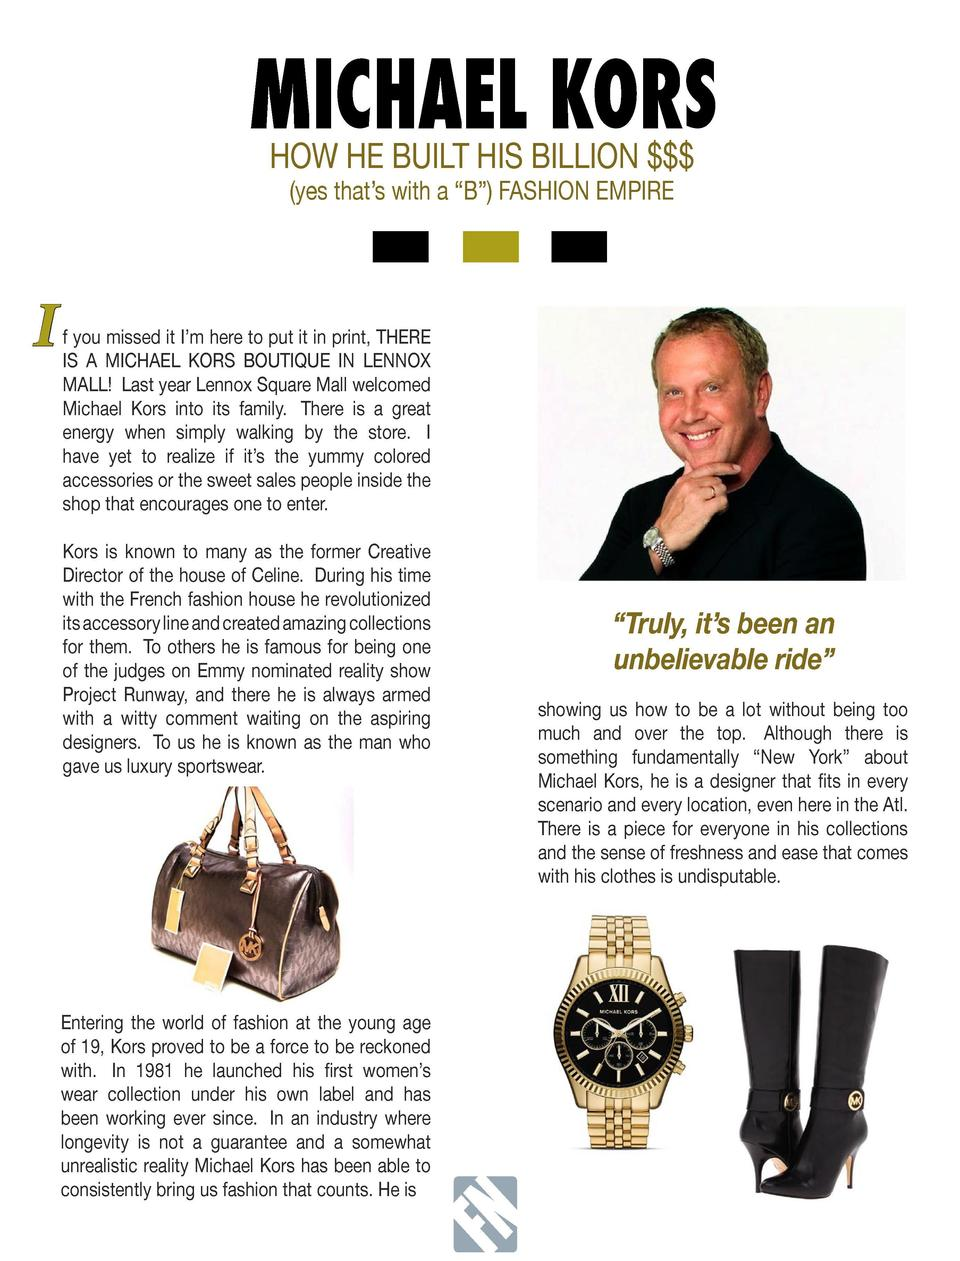 MICHAEL KORS HOW HE BUILT HIS BILLION      FN   yes that   s with a    B     FASHION EMPIRE  FashNation M  A  G  A  Z  I  ...